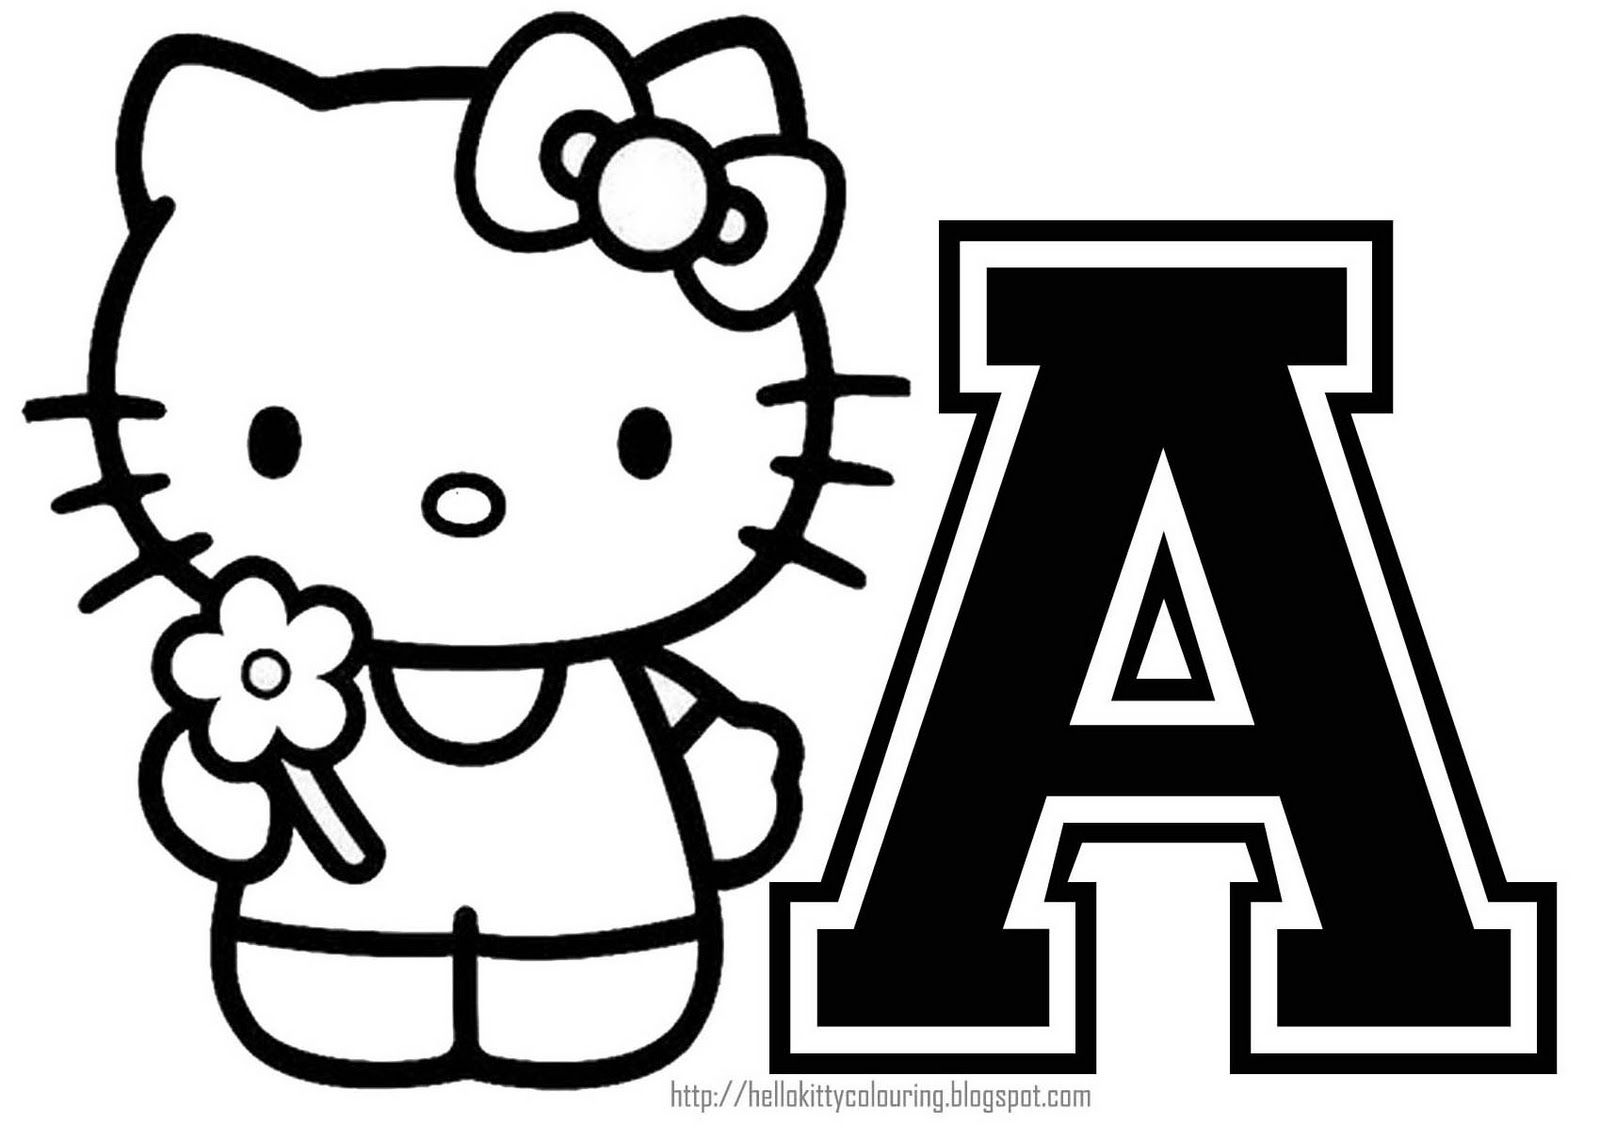 HELLO KITTY COLORING PAGES ALPHABETS